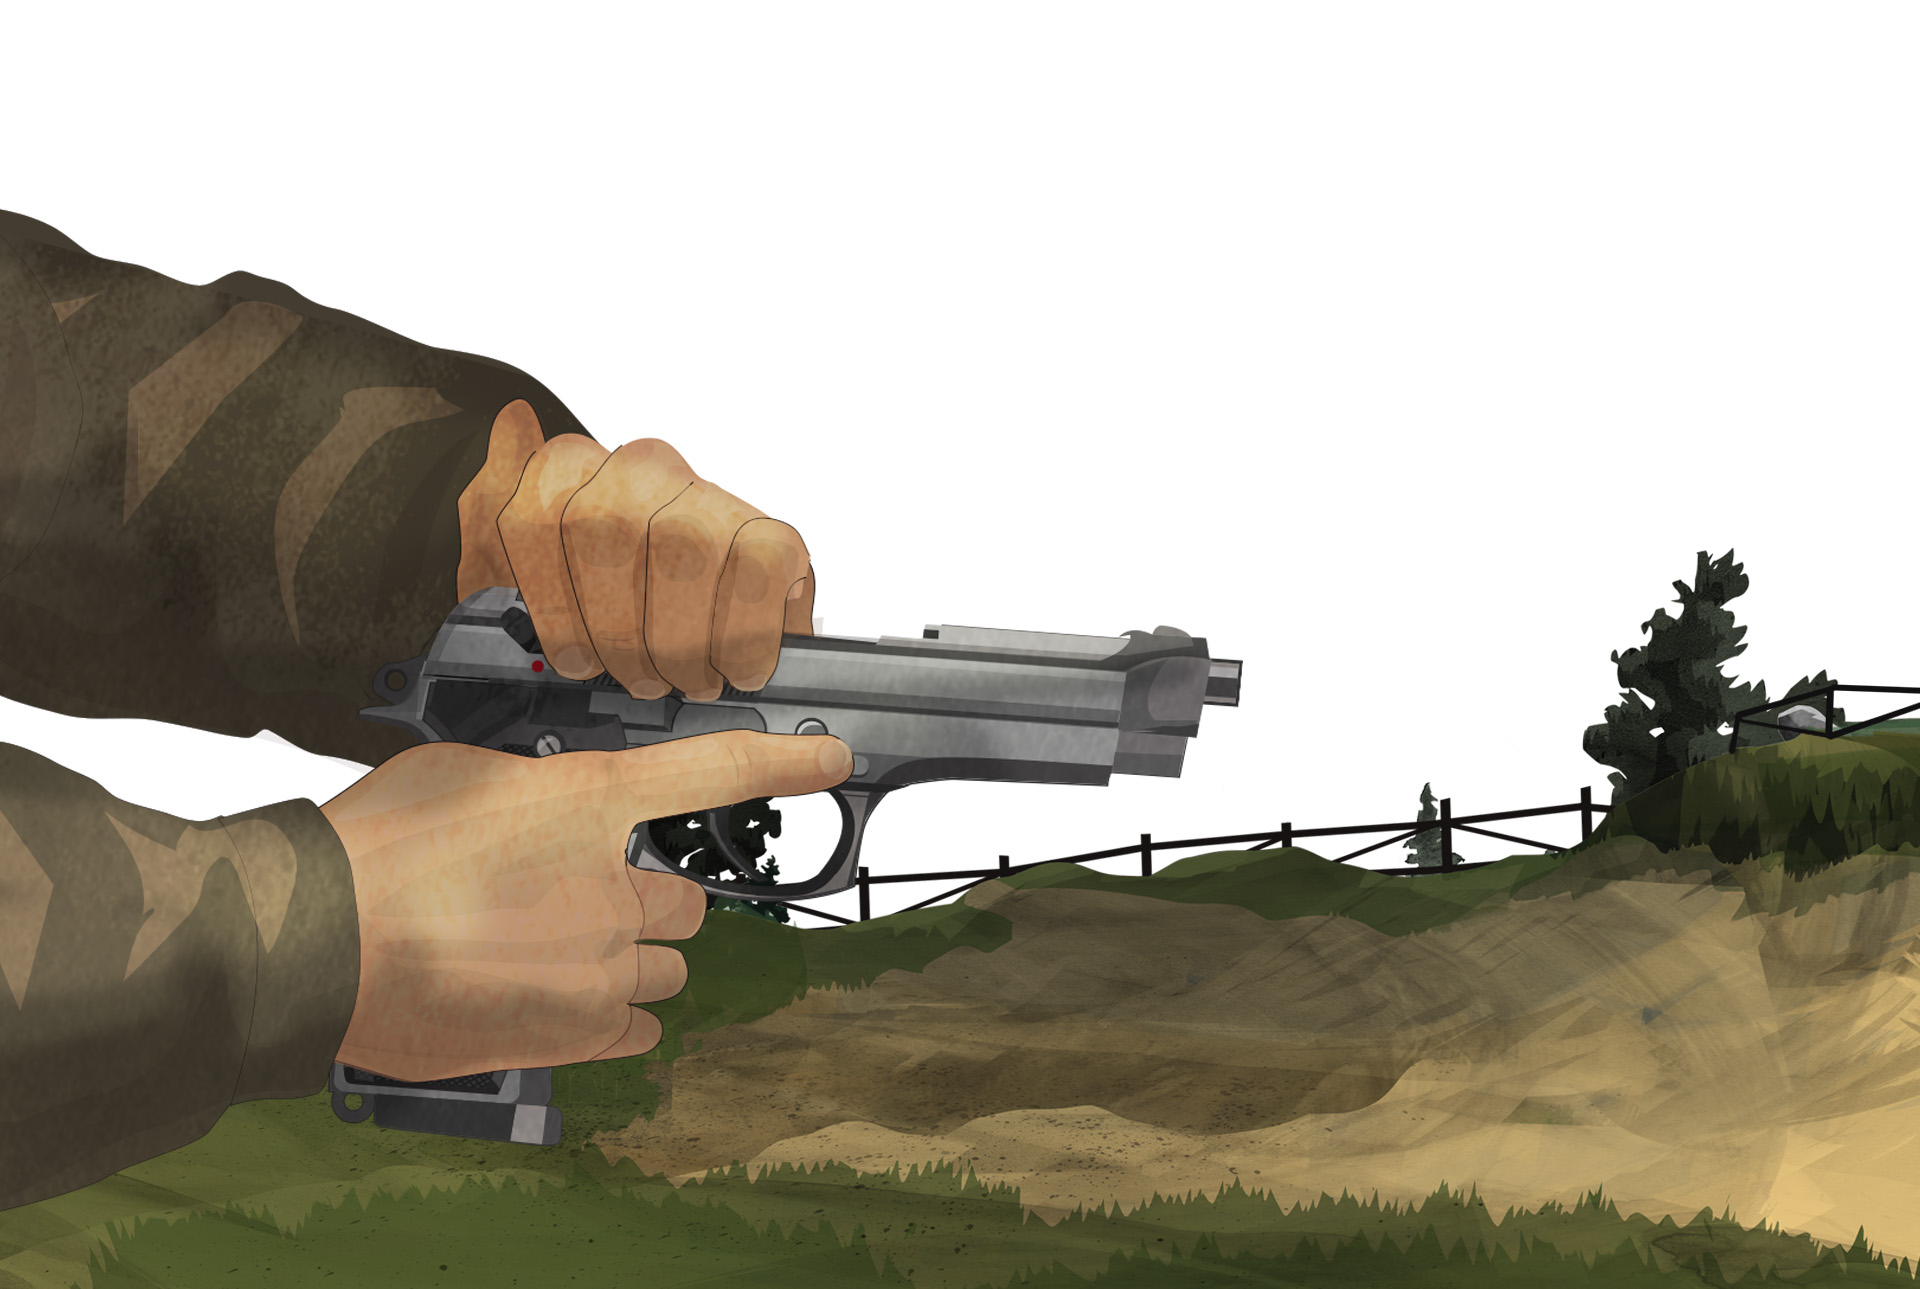 Illustration of a man in a two handed handgun stance at a shooting range.